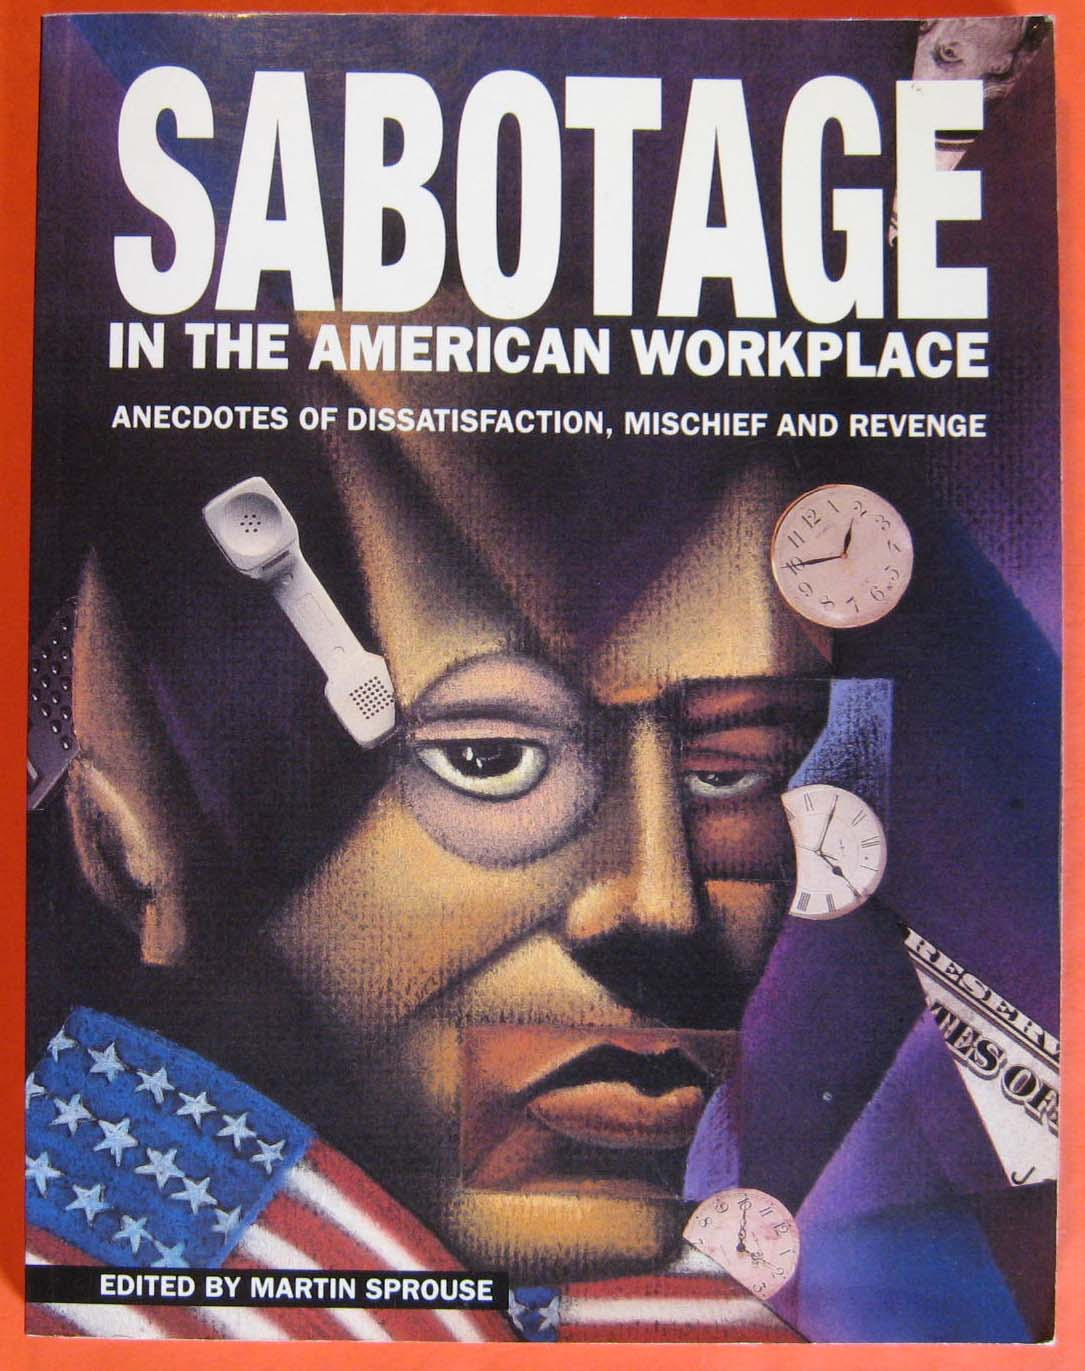 Sabotage in the American Workplace:  Anecdotes of Dissatisfaction, Mischief and Revenge, Sprouse, Martin (ed.)